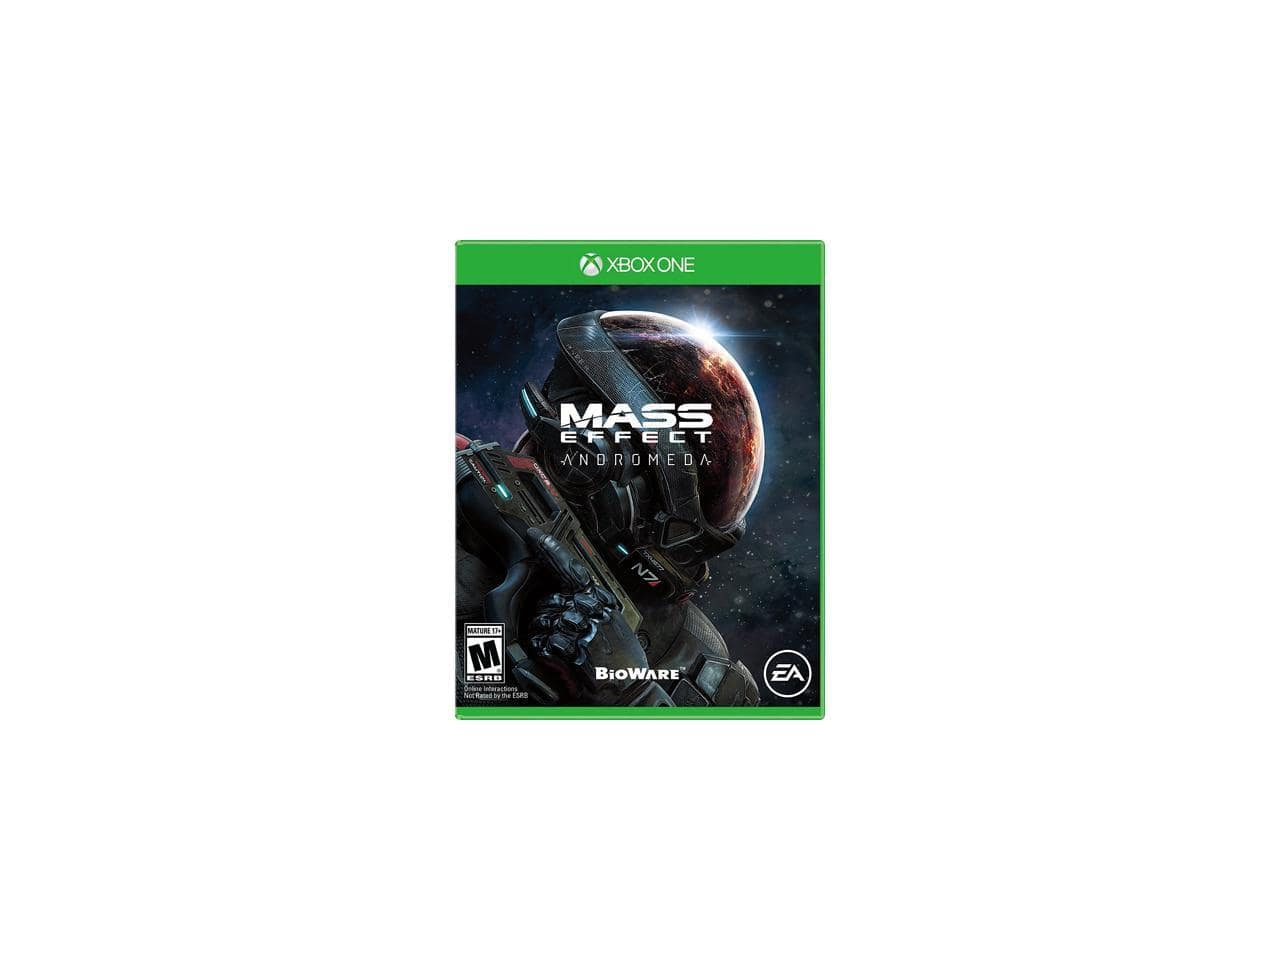 Mass Effect Andromeda - XBOX One - $10 + Shipping